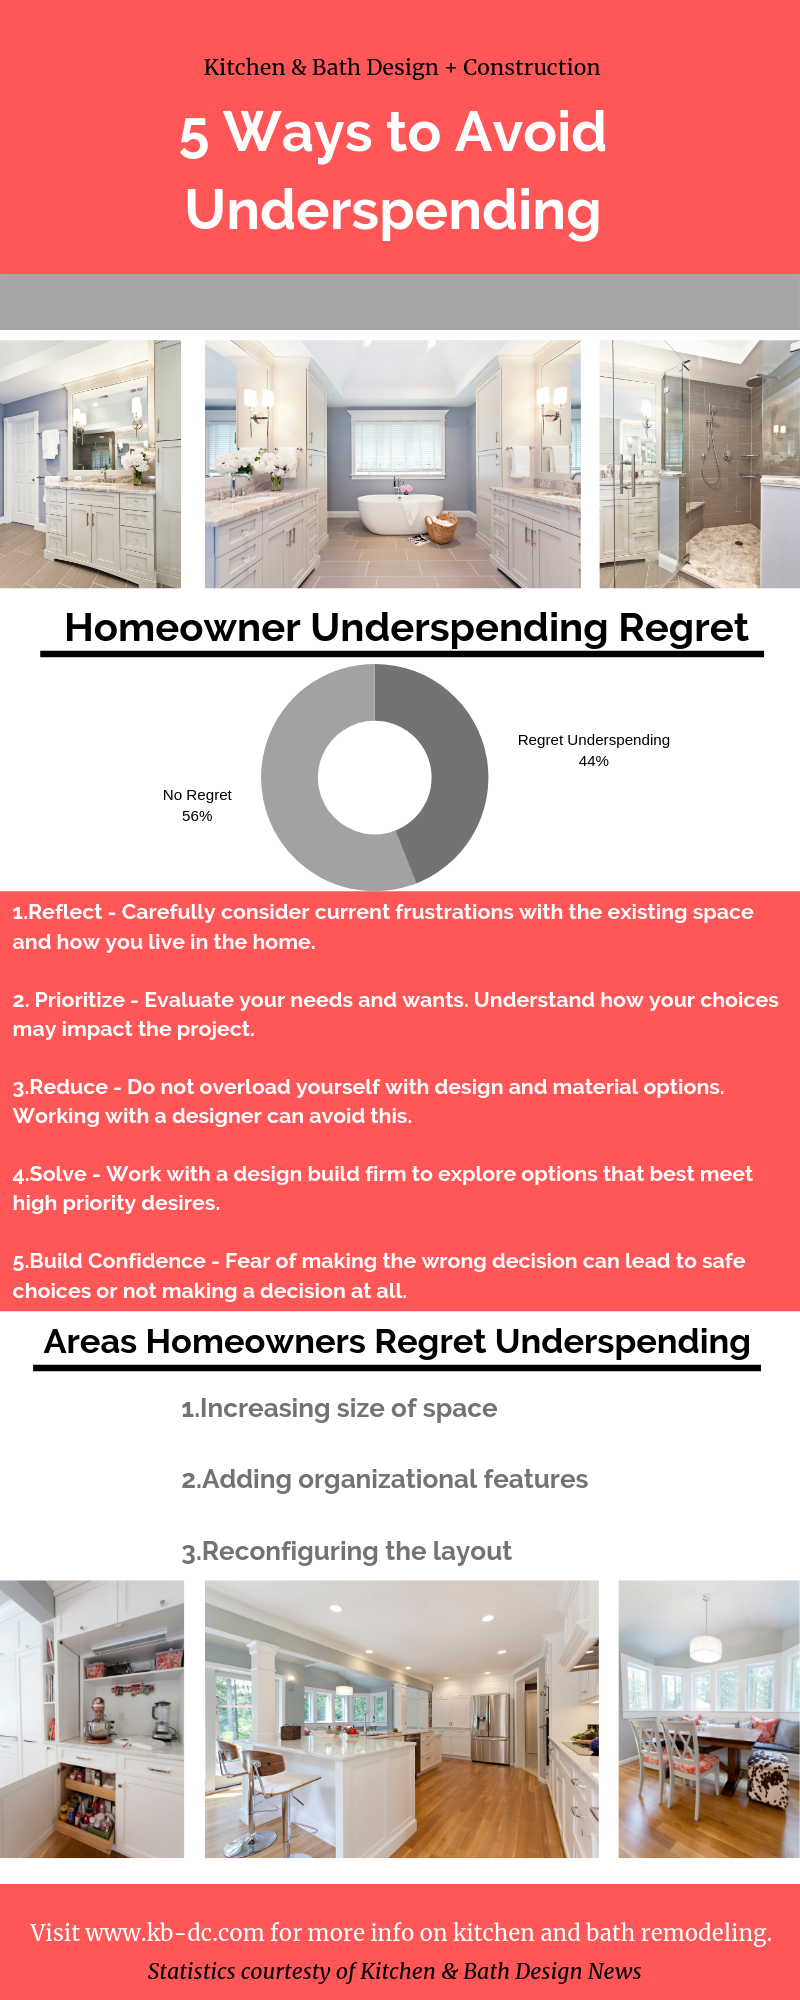 Infographic, 5 ways to avoid underspending